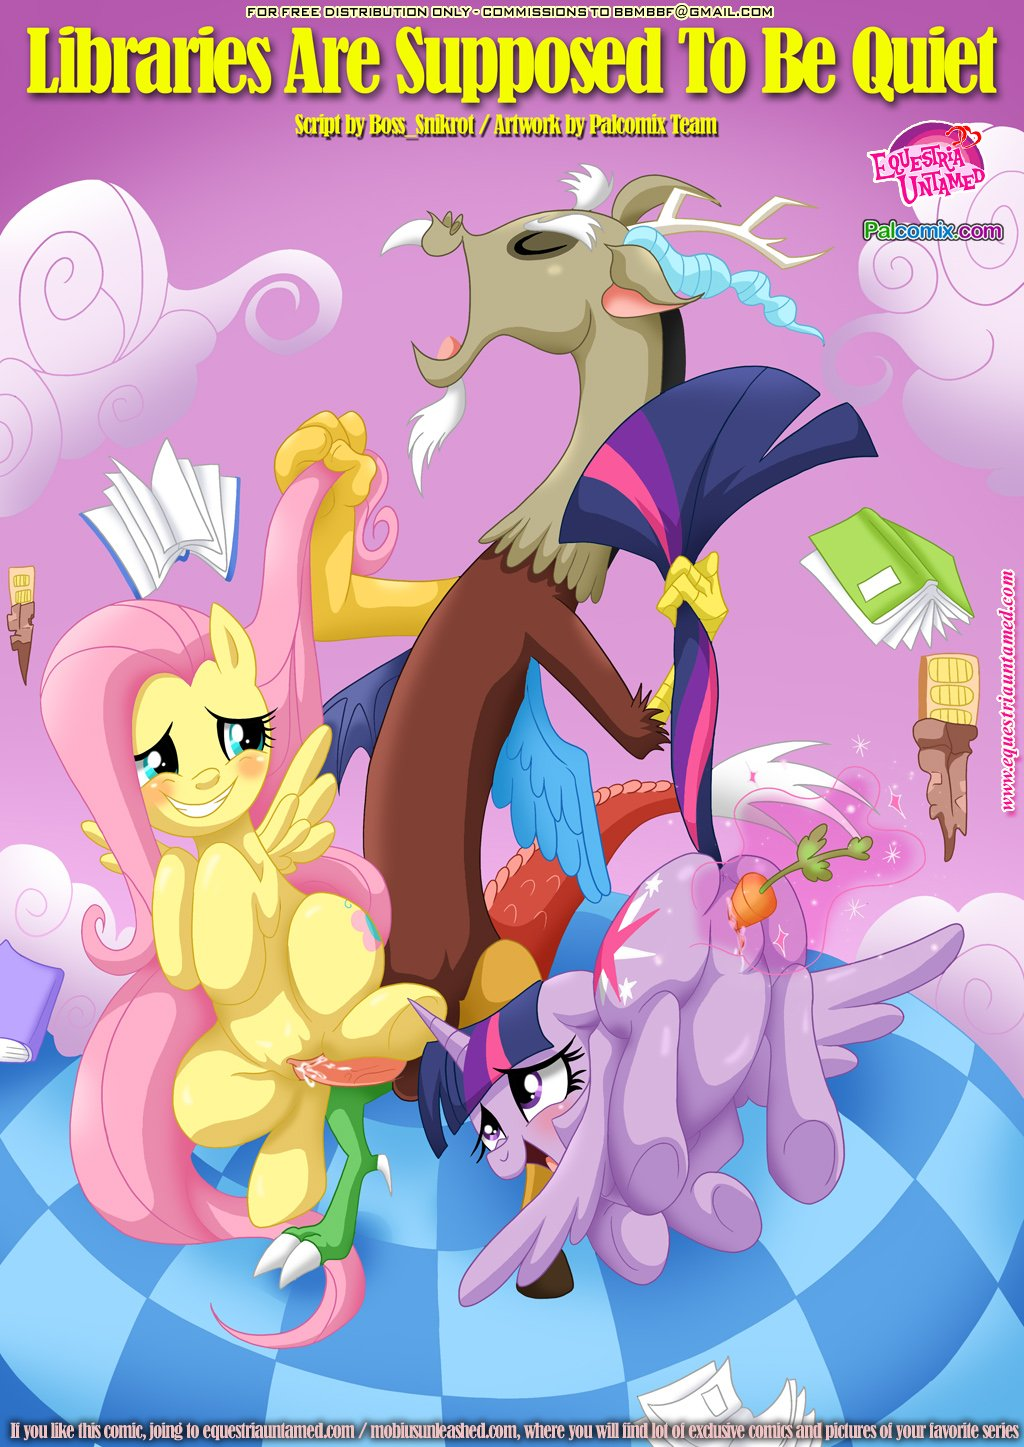 read libraries are supposed to be quiet my little pony